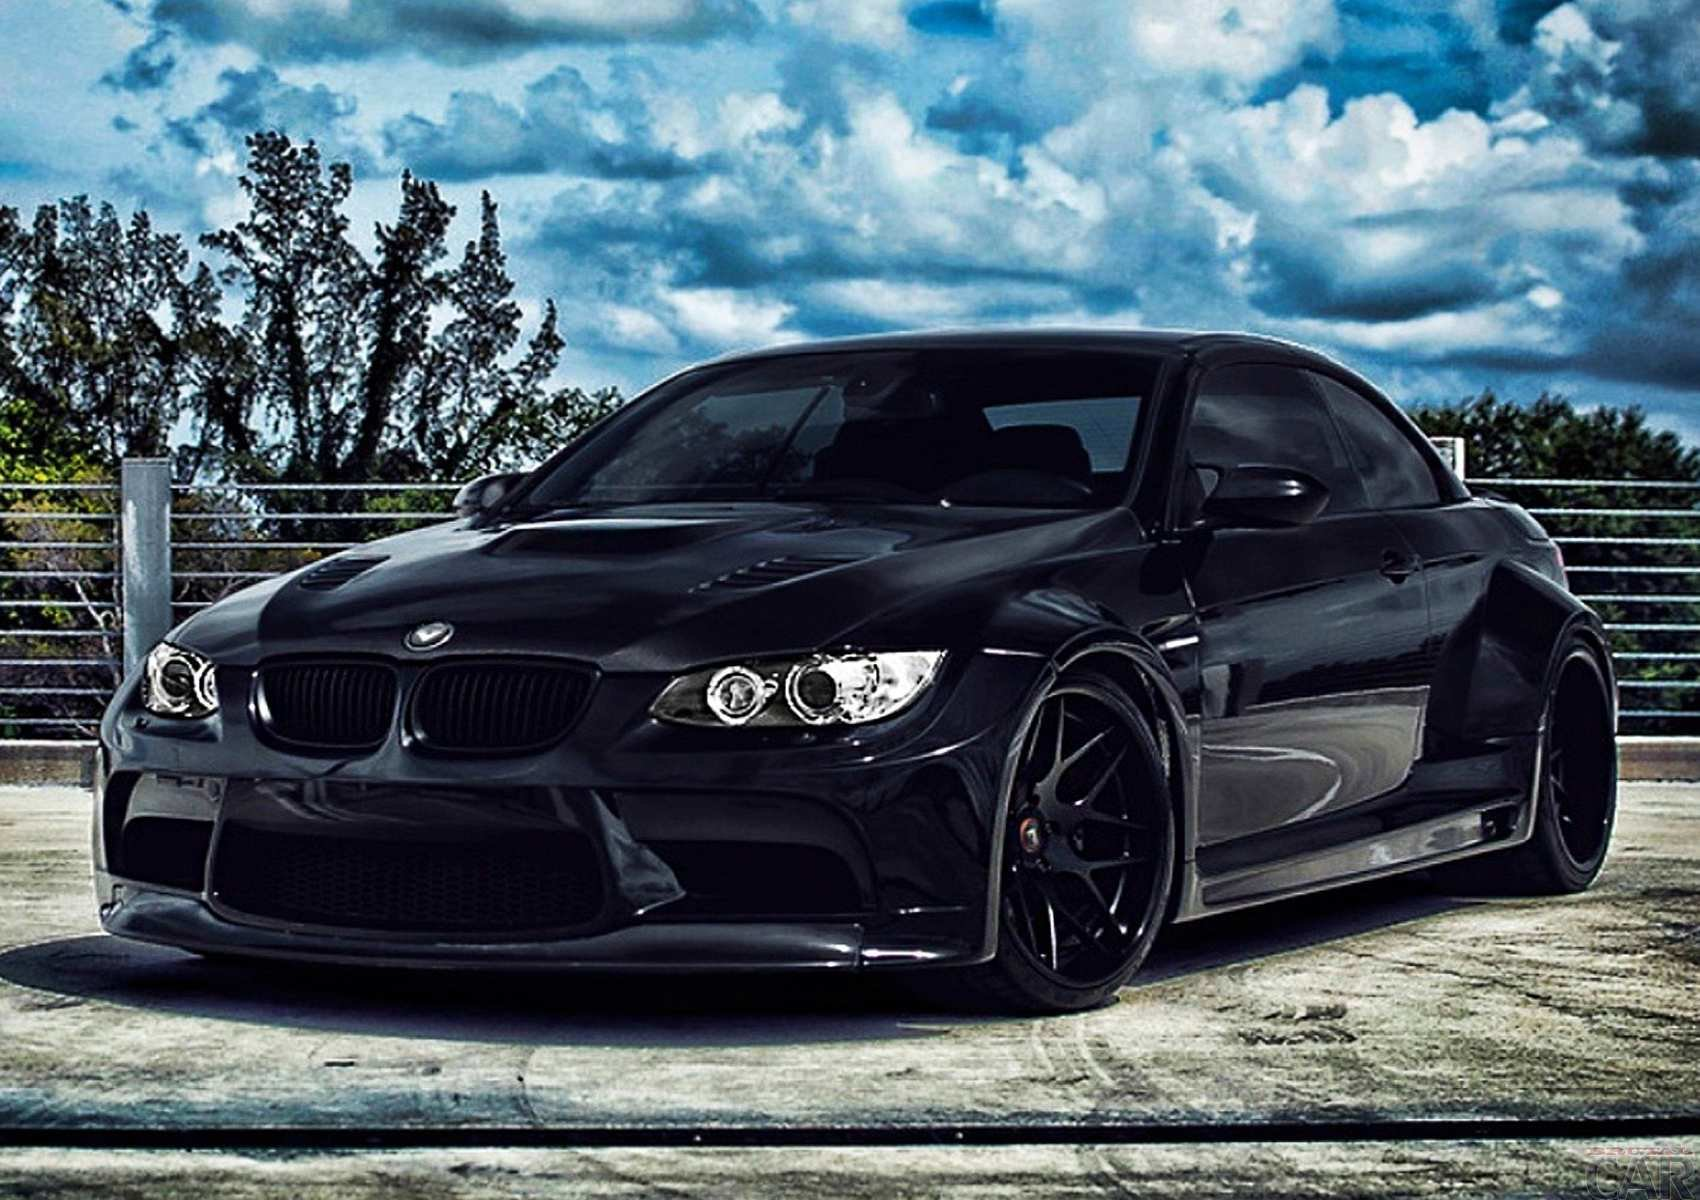 Latest Black Bmw Gtrs3 E93 M3 Download Extensive Backgrounds Of Free Download